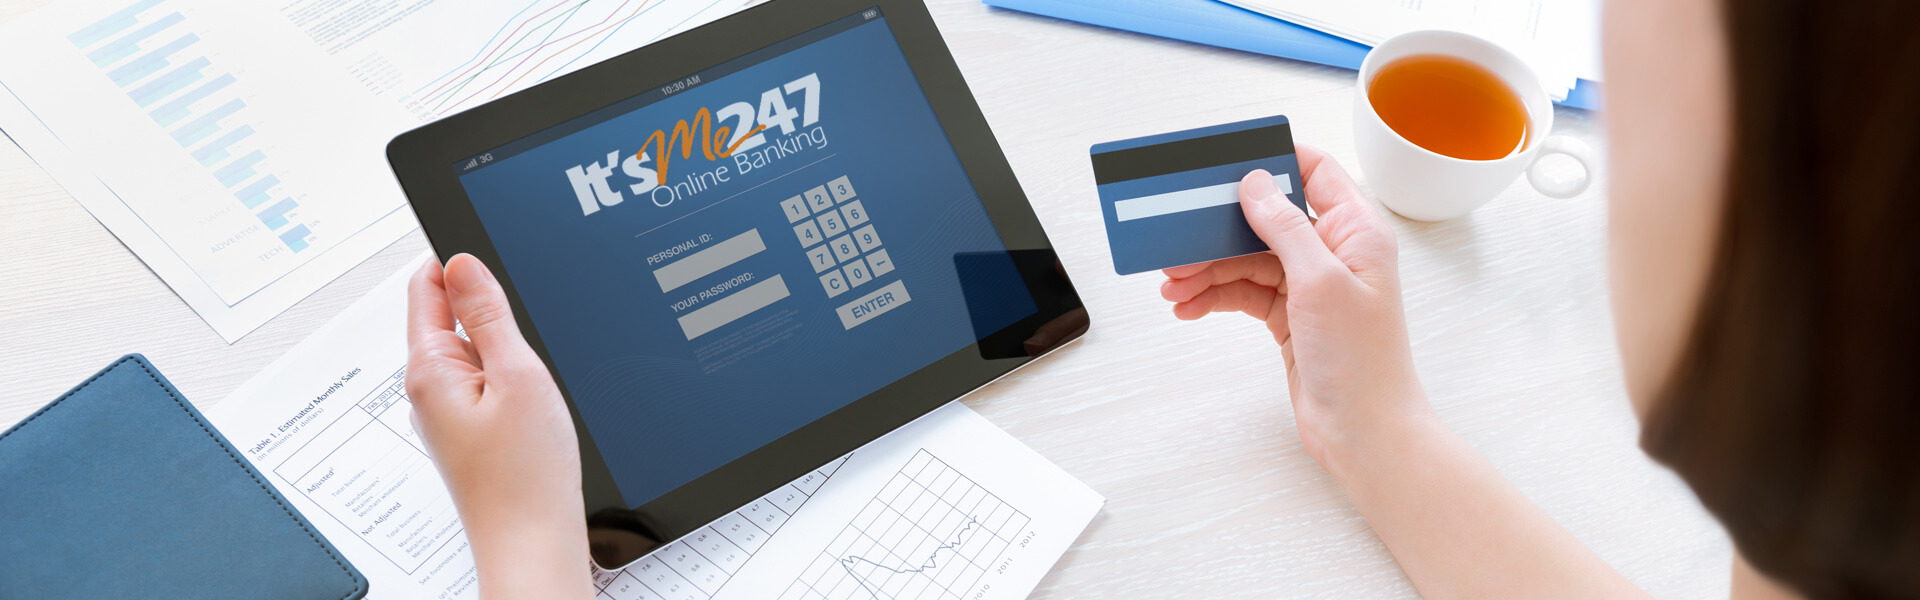 Its Me 247 Online Banking Banner